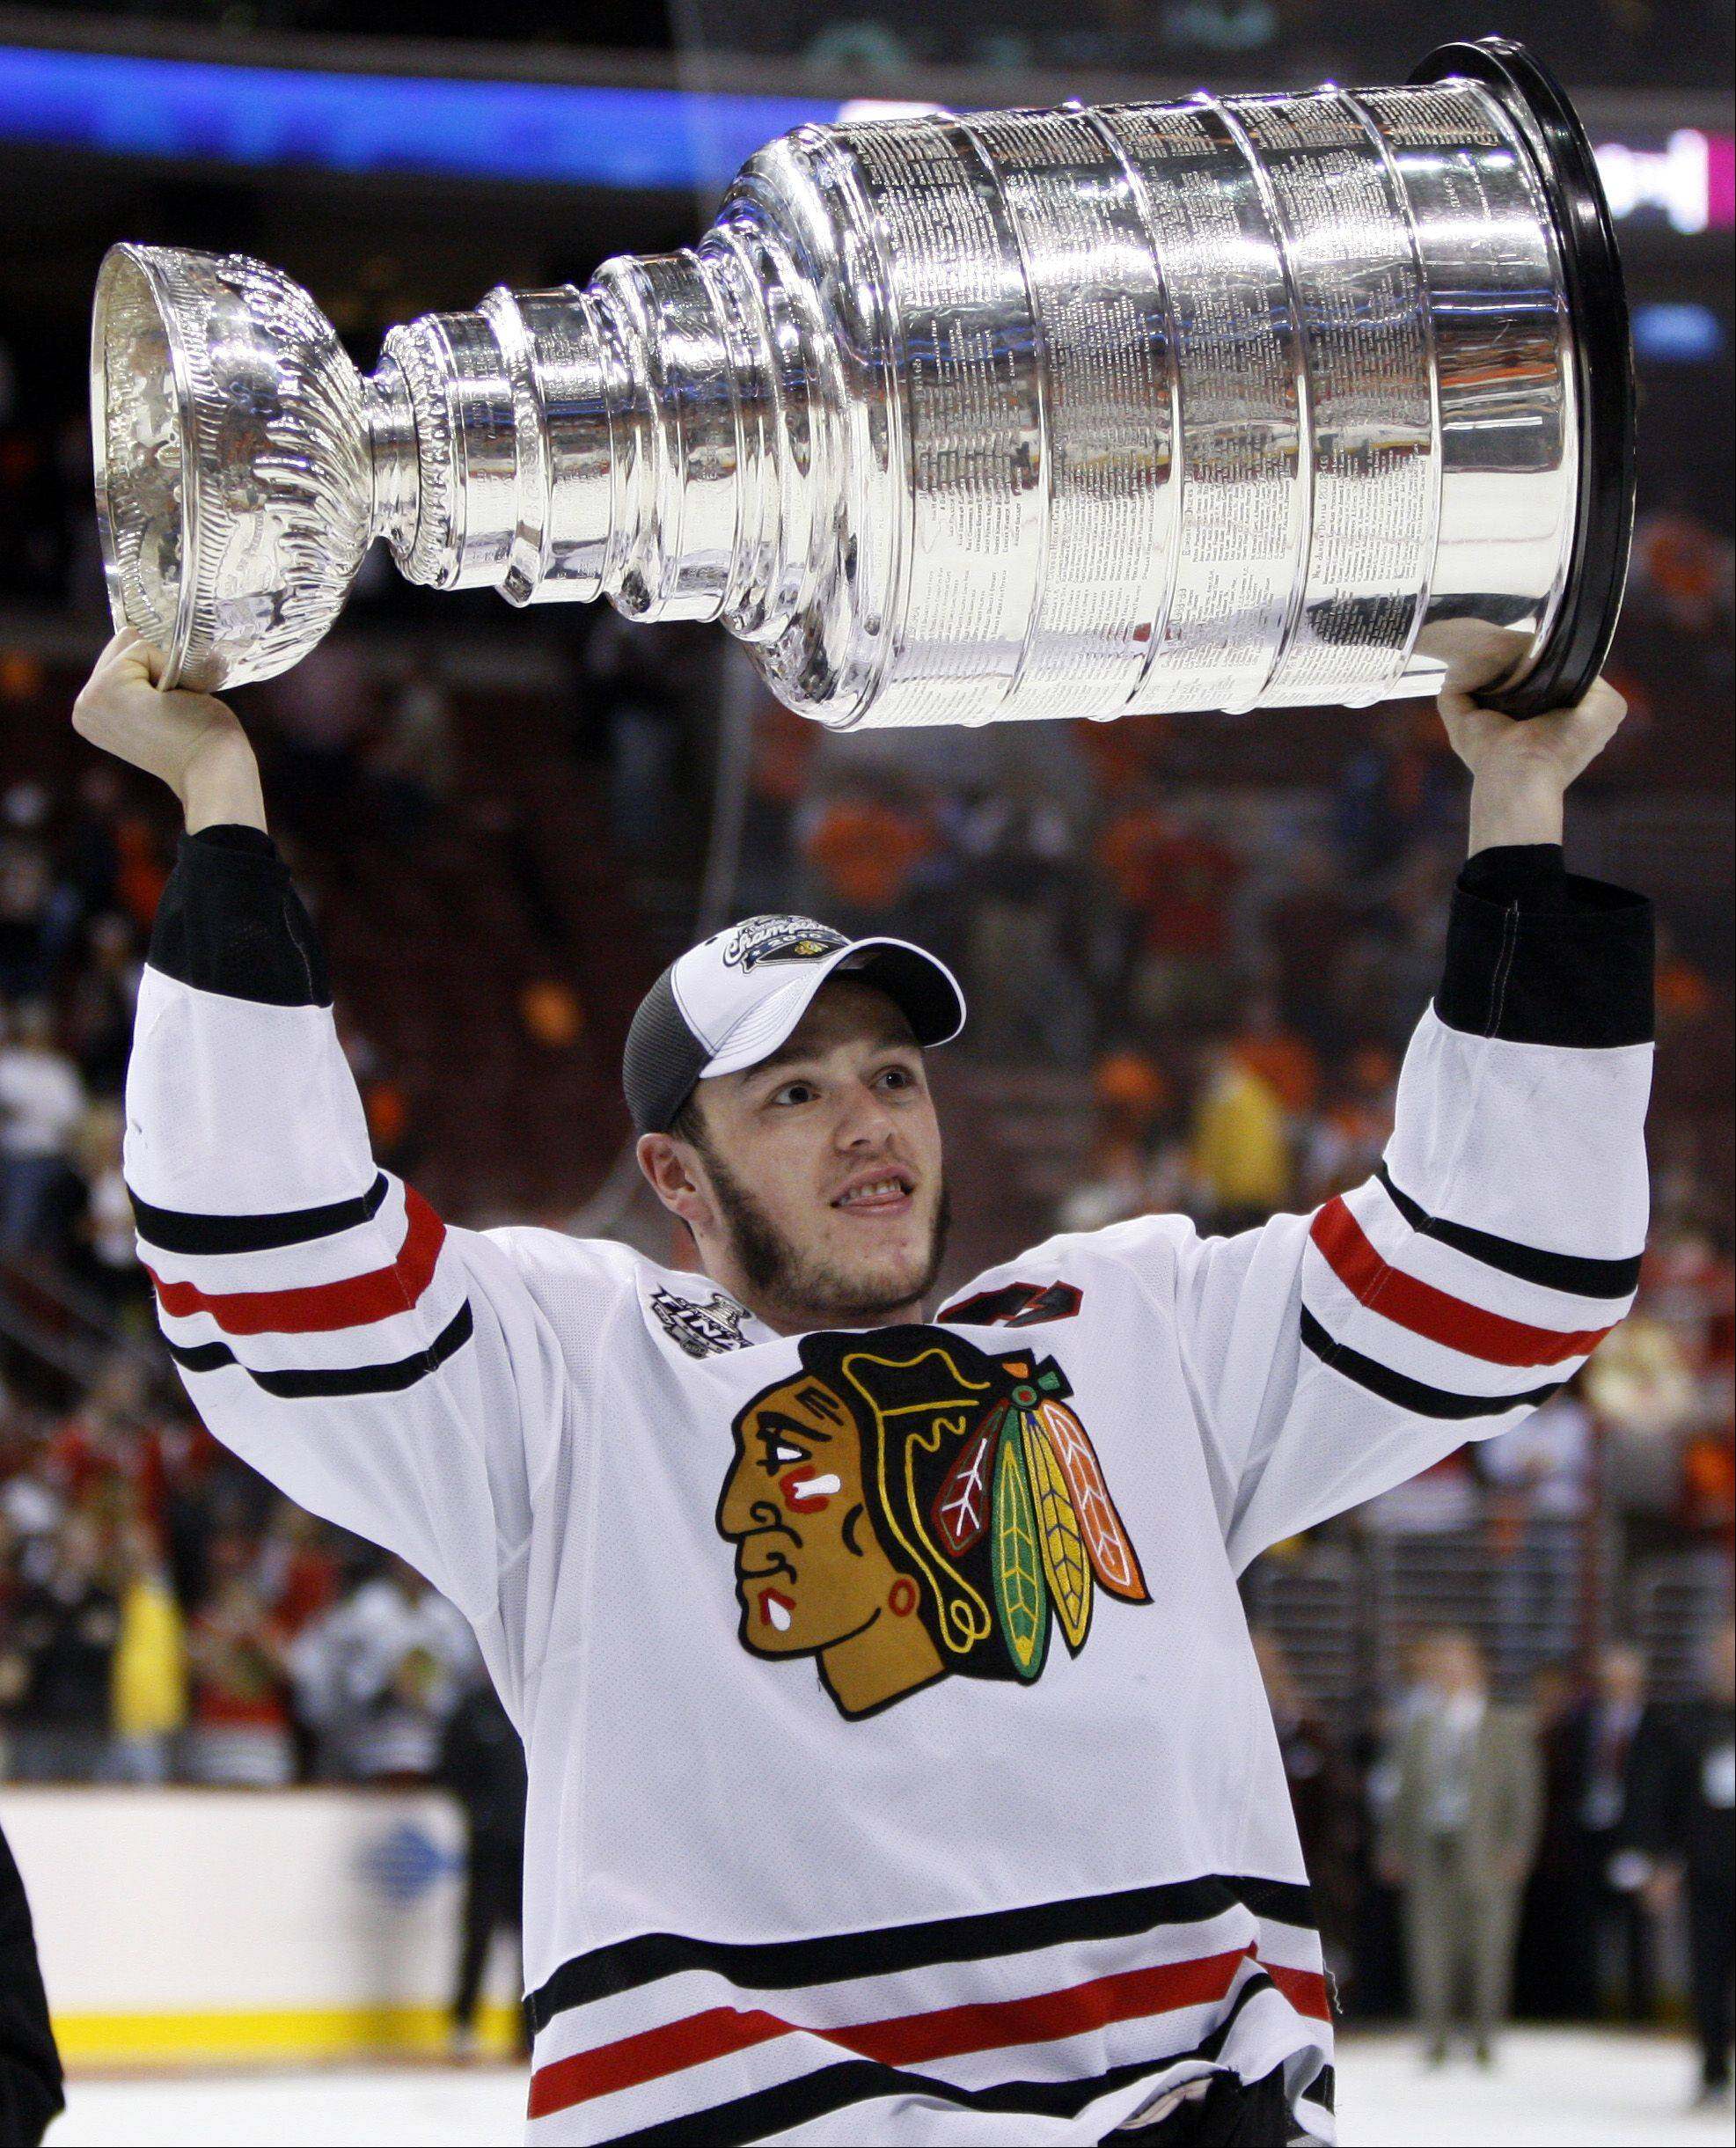 Chicago Blackhawks captain Jonathan Toews lifts the Stanley Cup after the Blackhawks beat the Philadelphia Flyers 4-3 in overtime to win Game 6 of the NHL Stanley Cup hockey finals Wednesday, June 9, 2010, in Philadelphia.